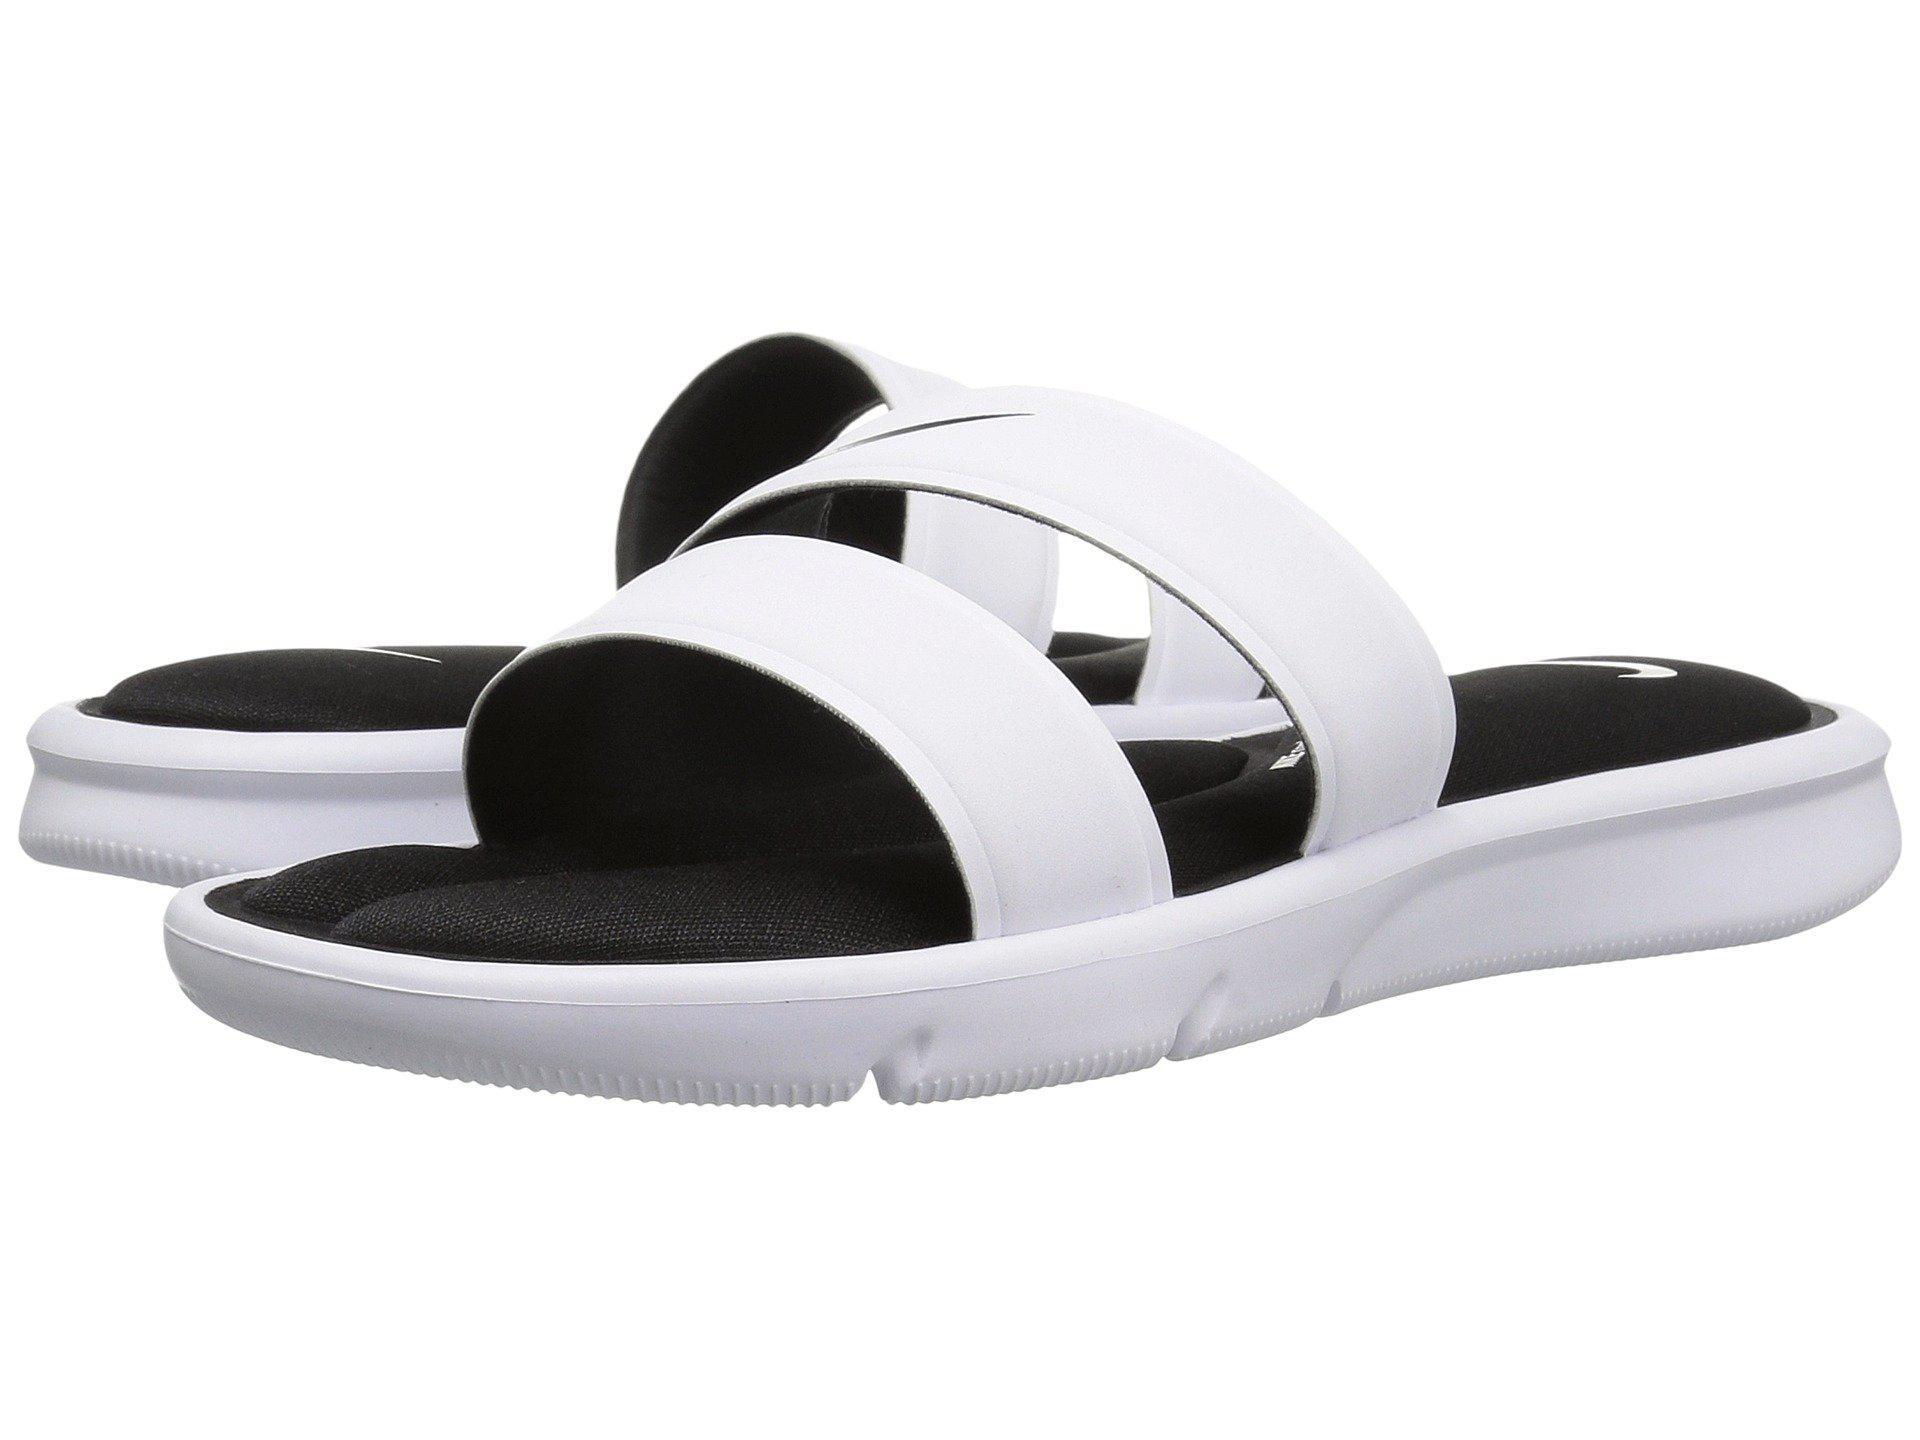 80d45886c Lyst - Nike Ultra Comfort Slide in White